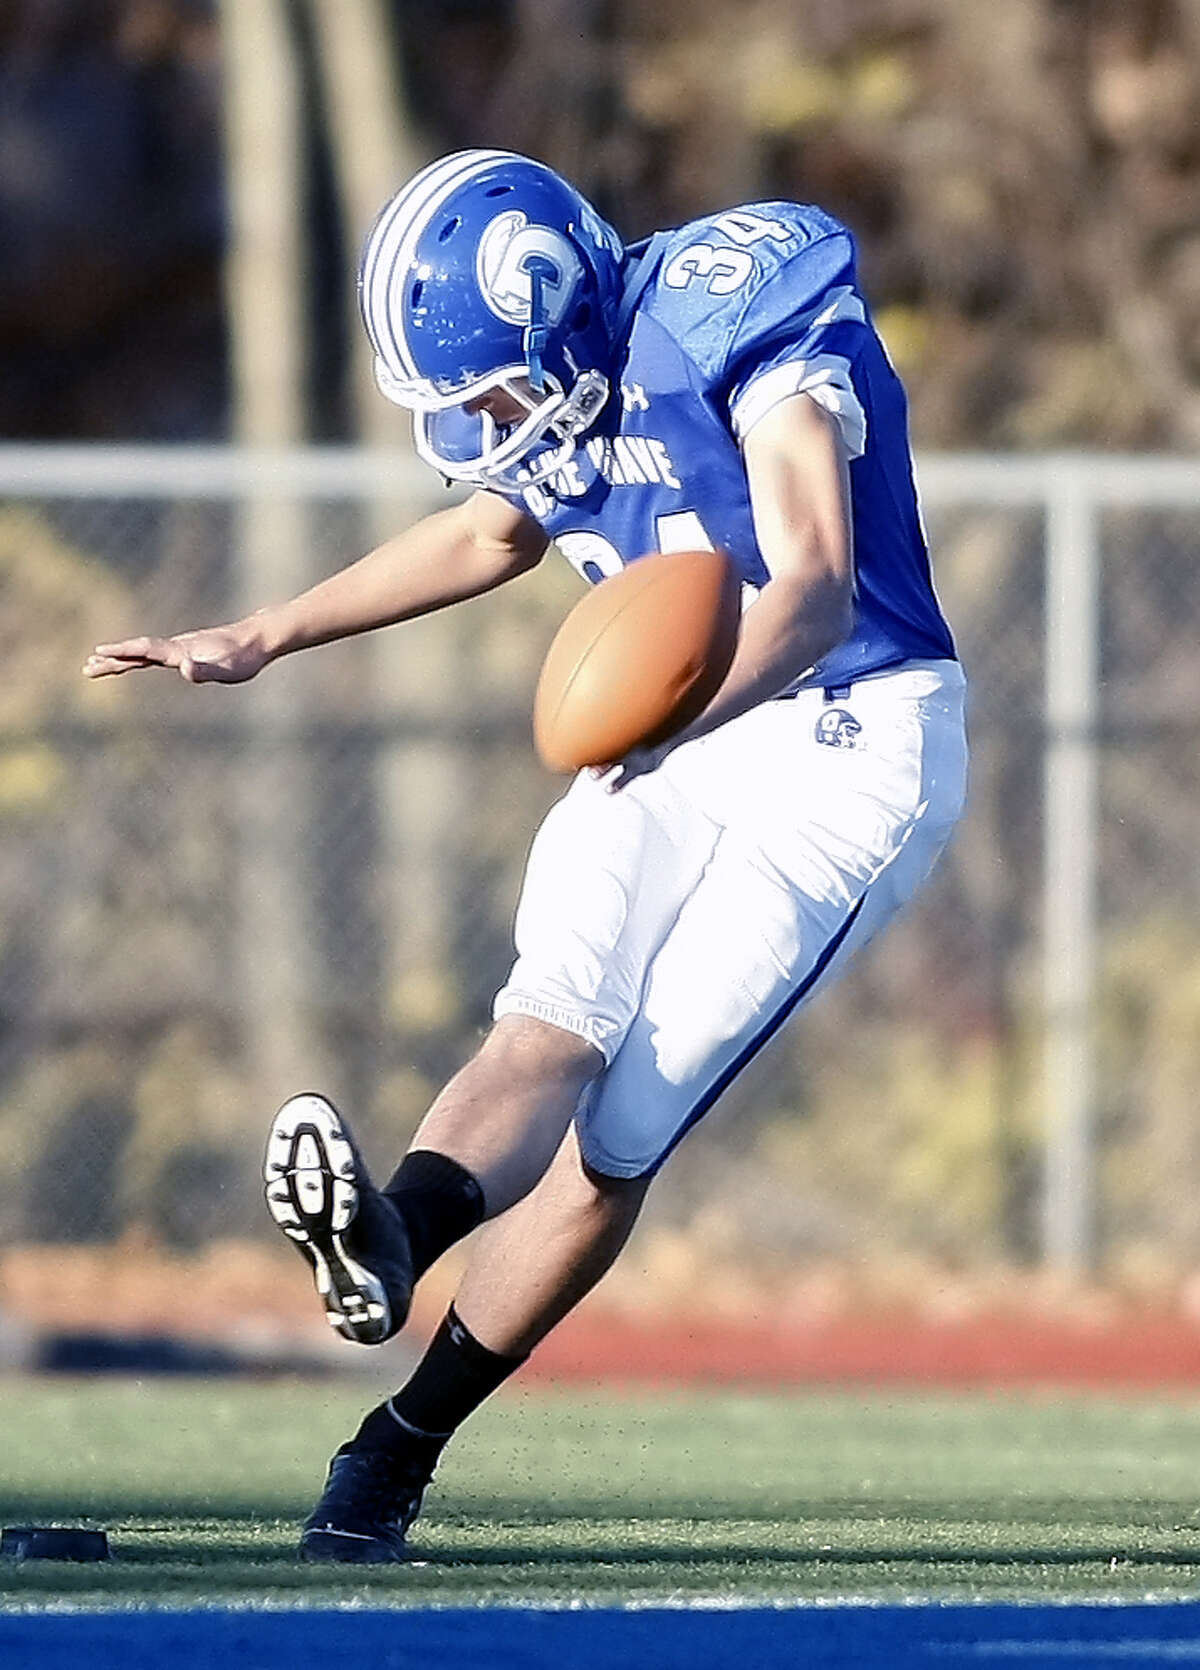 Tommy Dimauro, kicks the ball for the punt team after a blue Wave score as Darien hosts Norwalk High on Saturday, November, 13th in Darien, Conn.